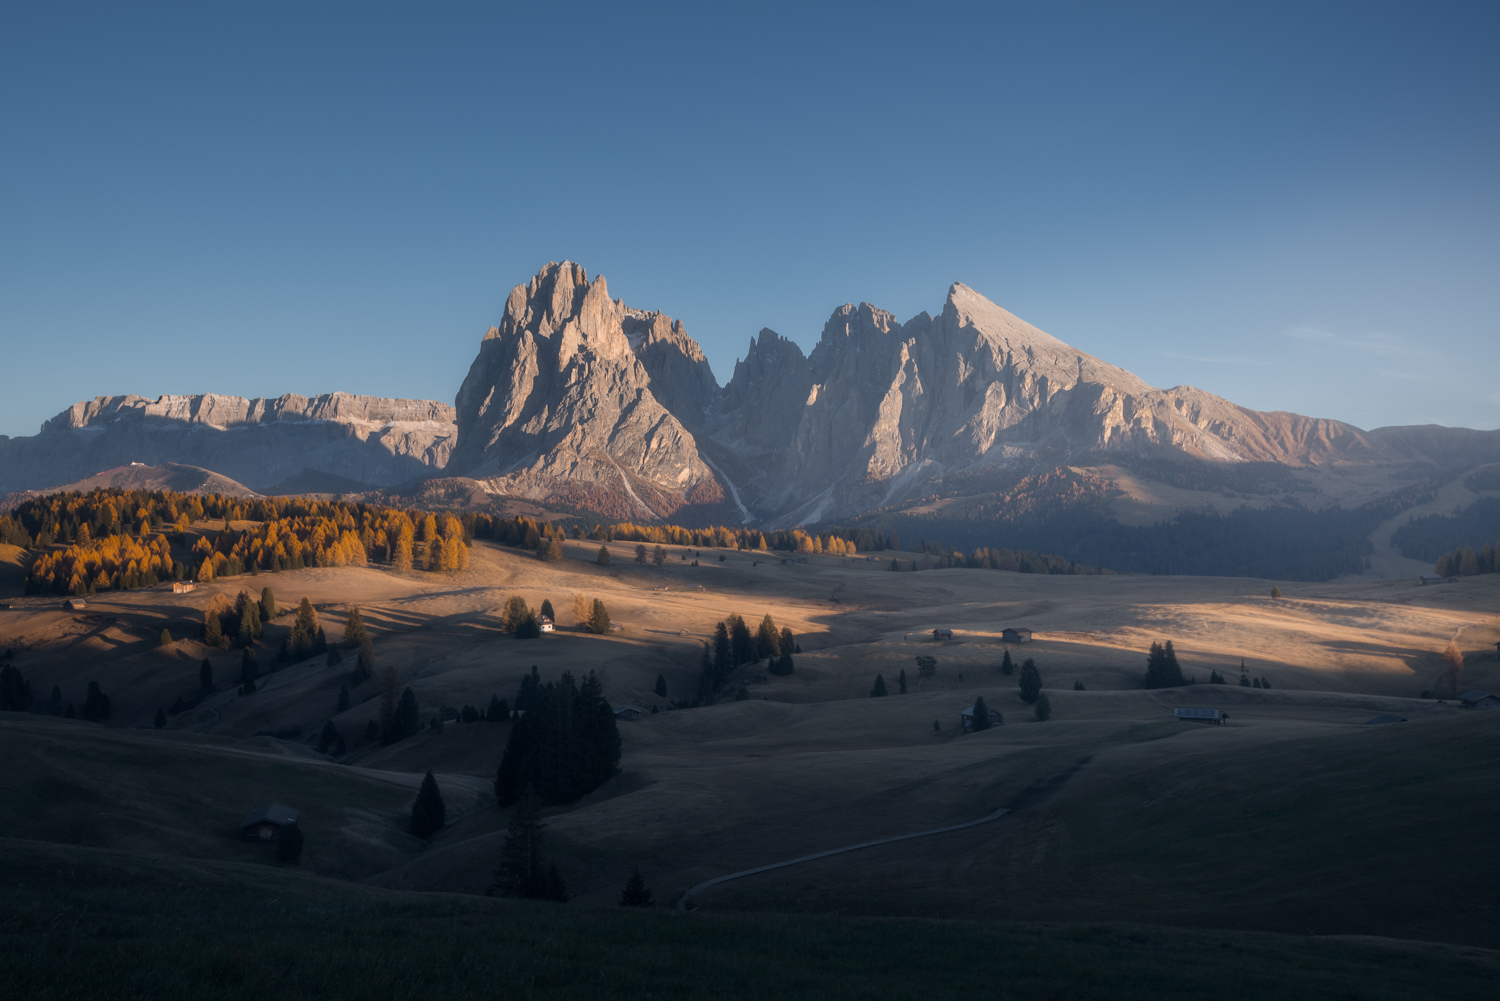 Avoid These 4 Post-Processing Mistakes That Can Ruin Your Images - mountain scene